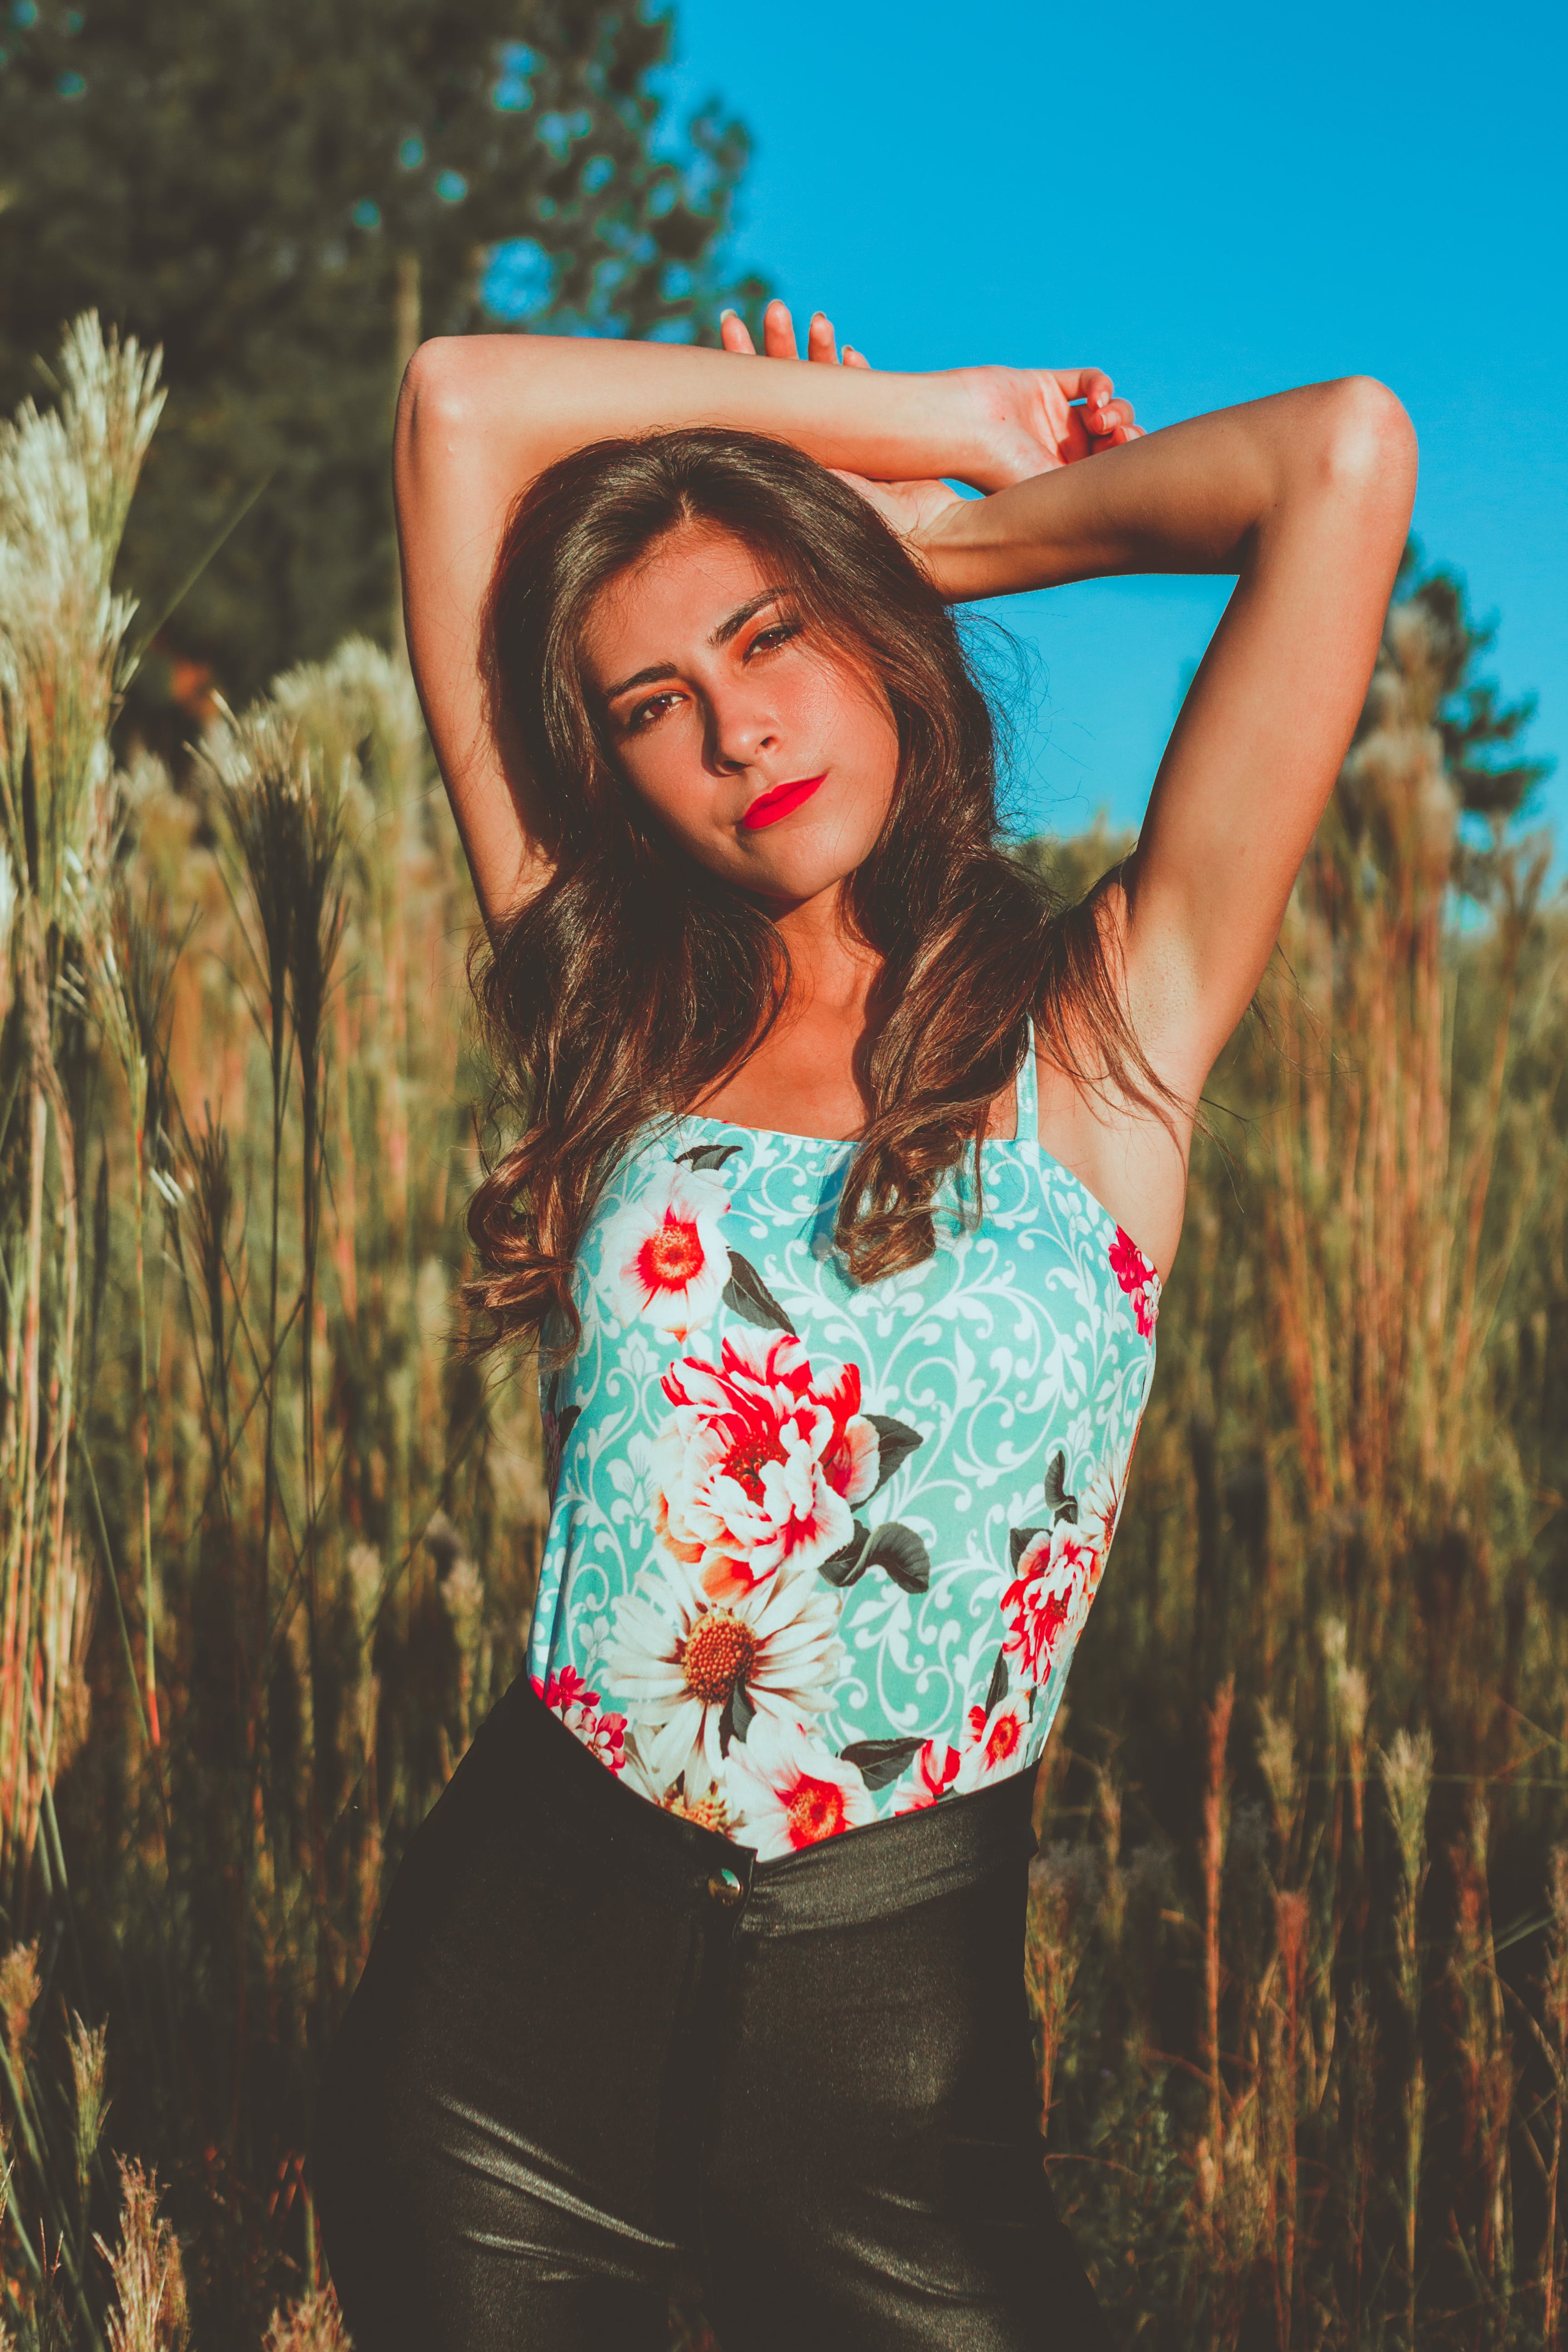 Woman In Teal And Red Floral Top Standing On Grass Field